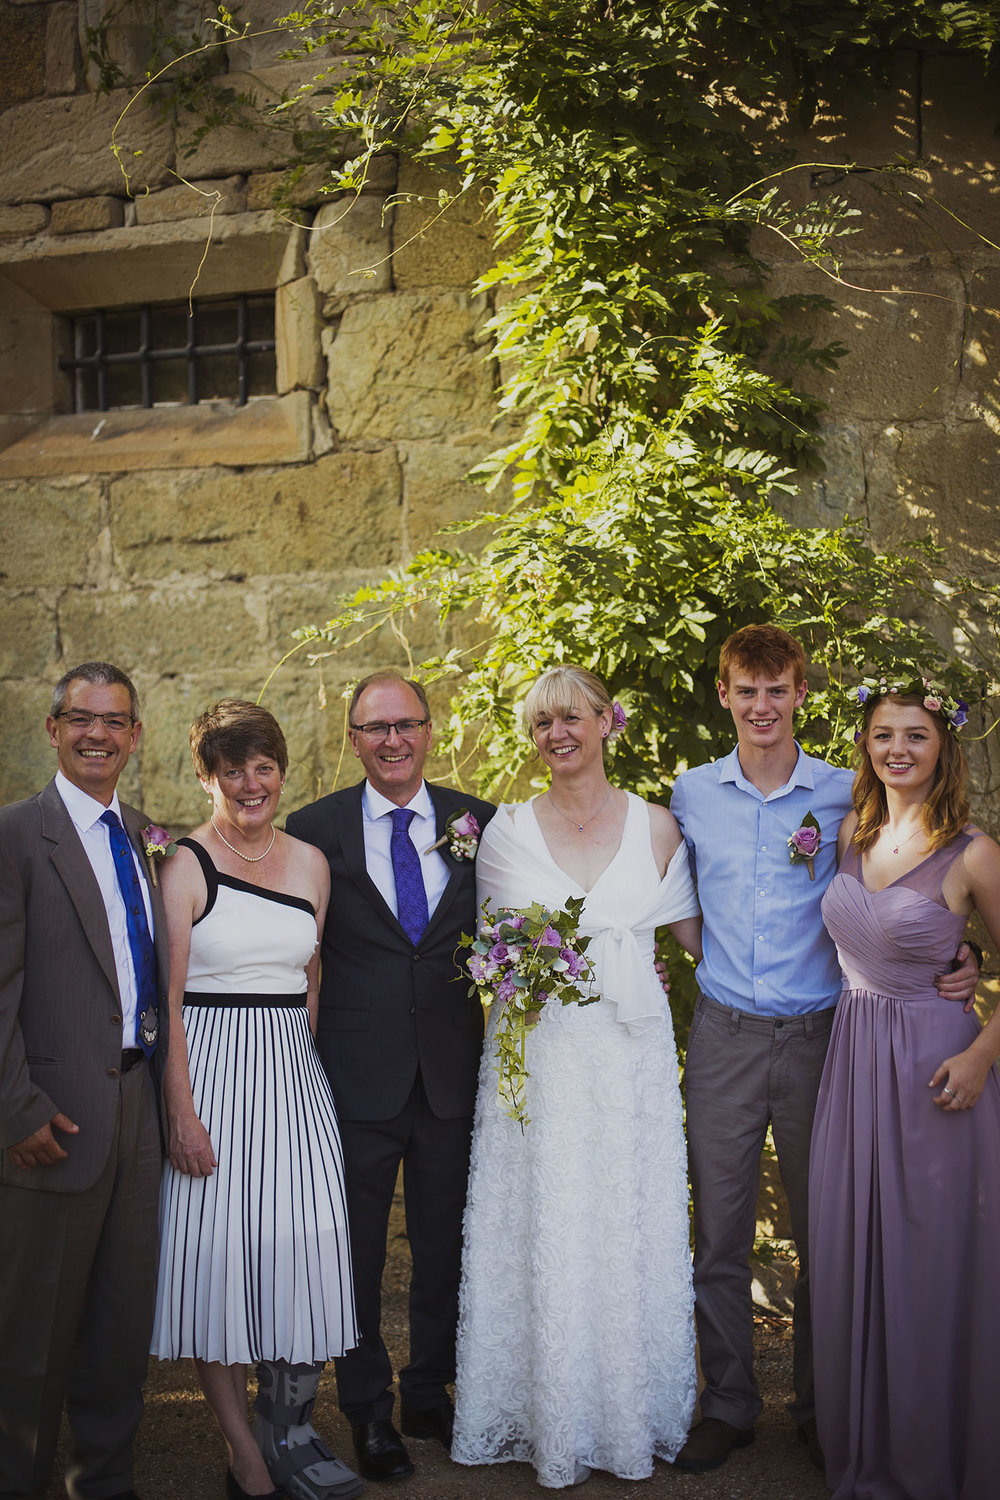 bride and groom with family at chateaux des ducs de joyeuses france destination wedding photography